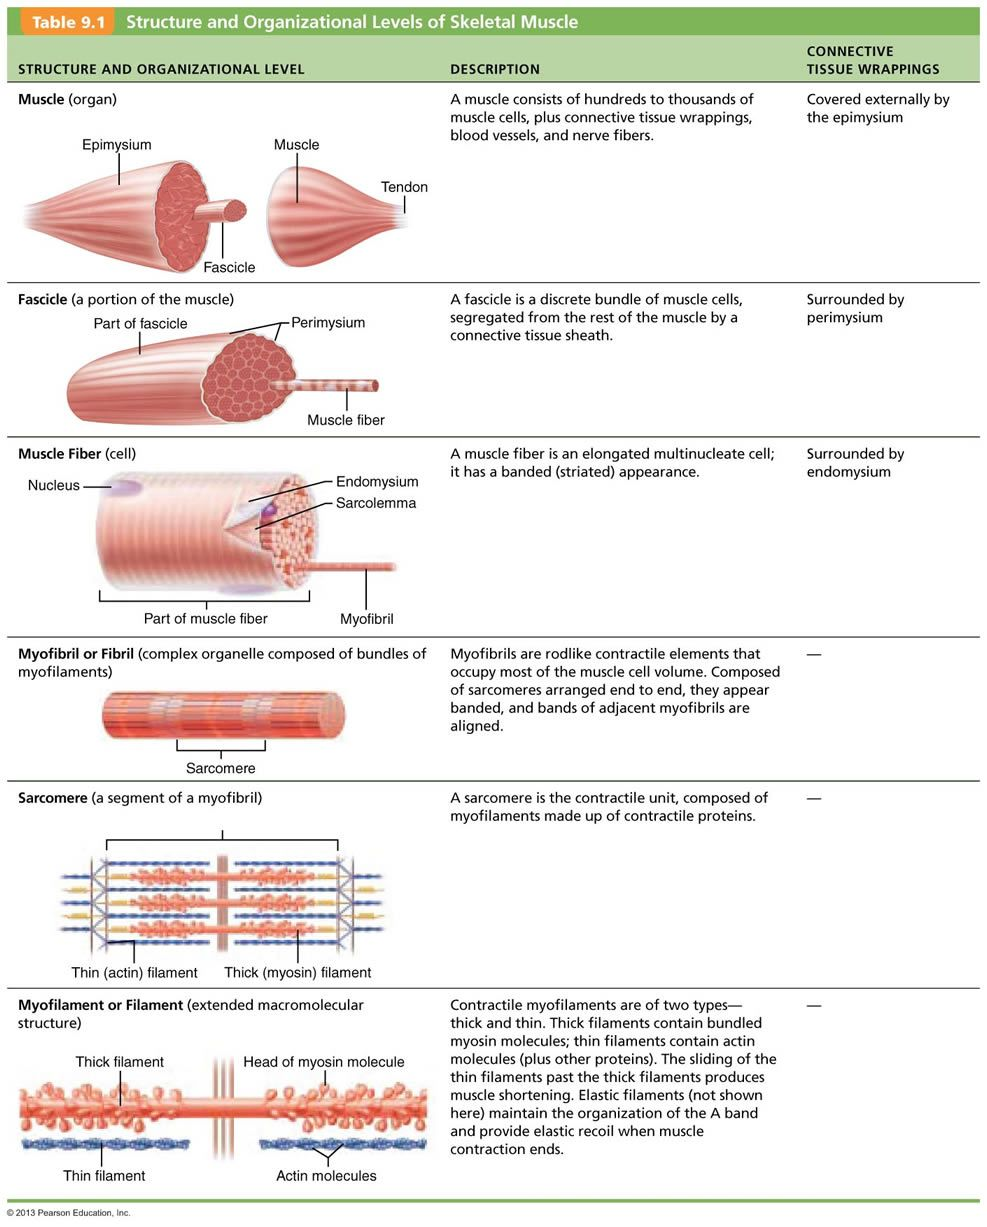 Chapter 9: Muscles and Muscles Tissue | hey | Pinterest | Muscle ...